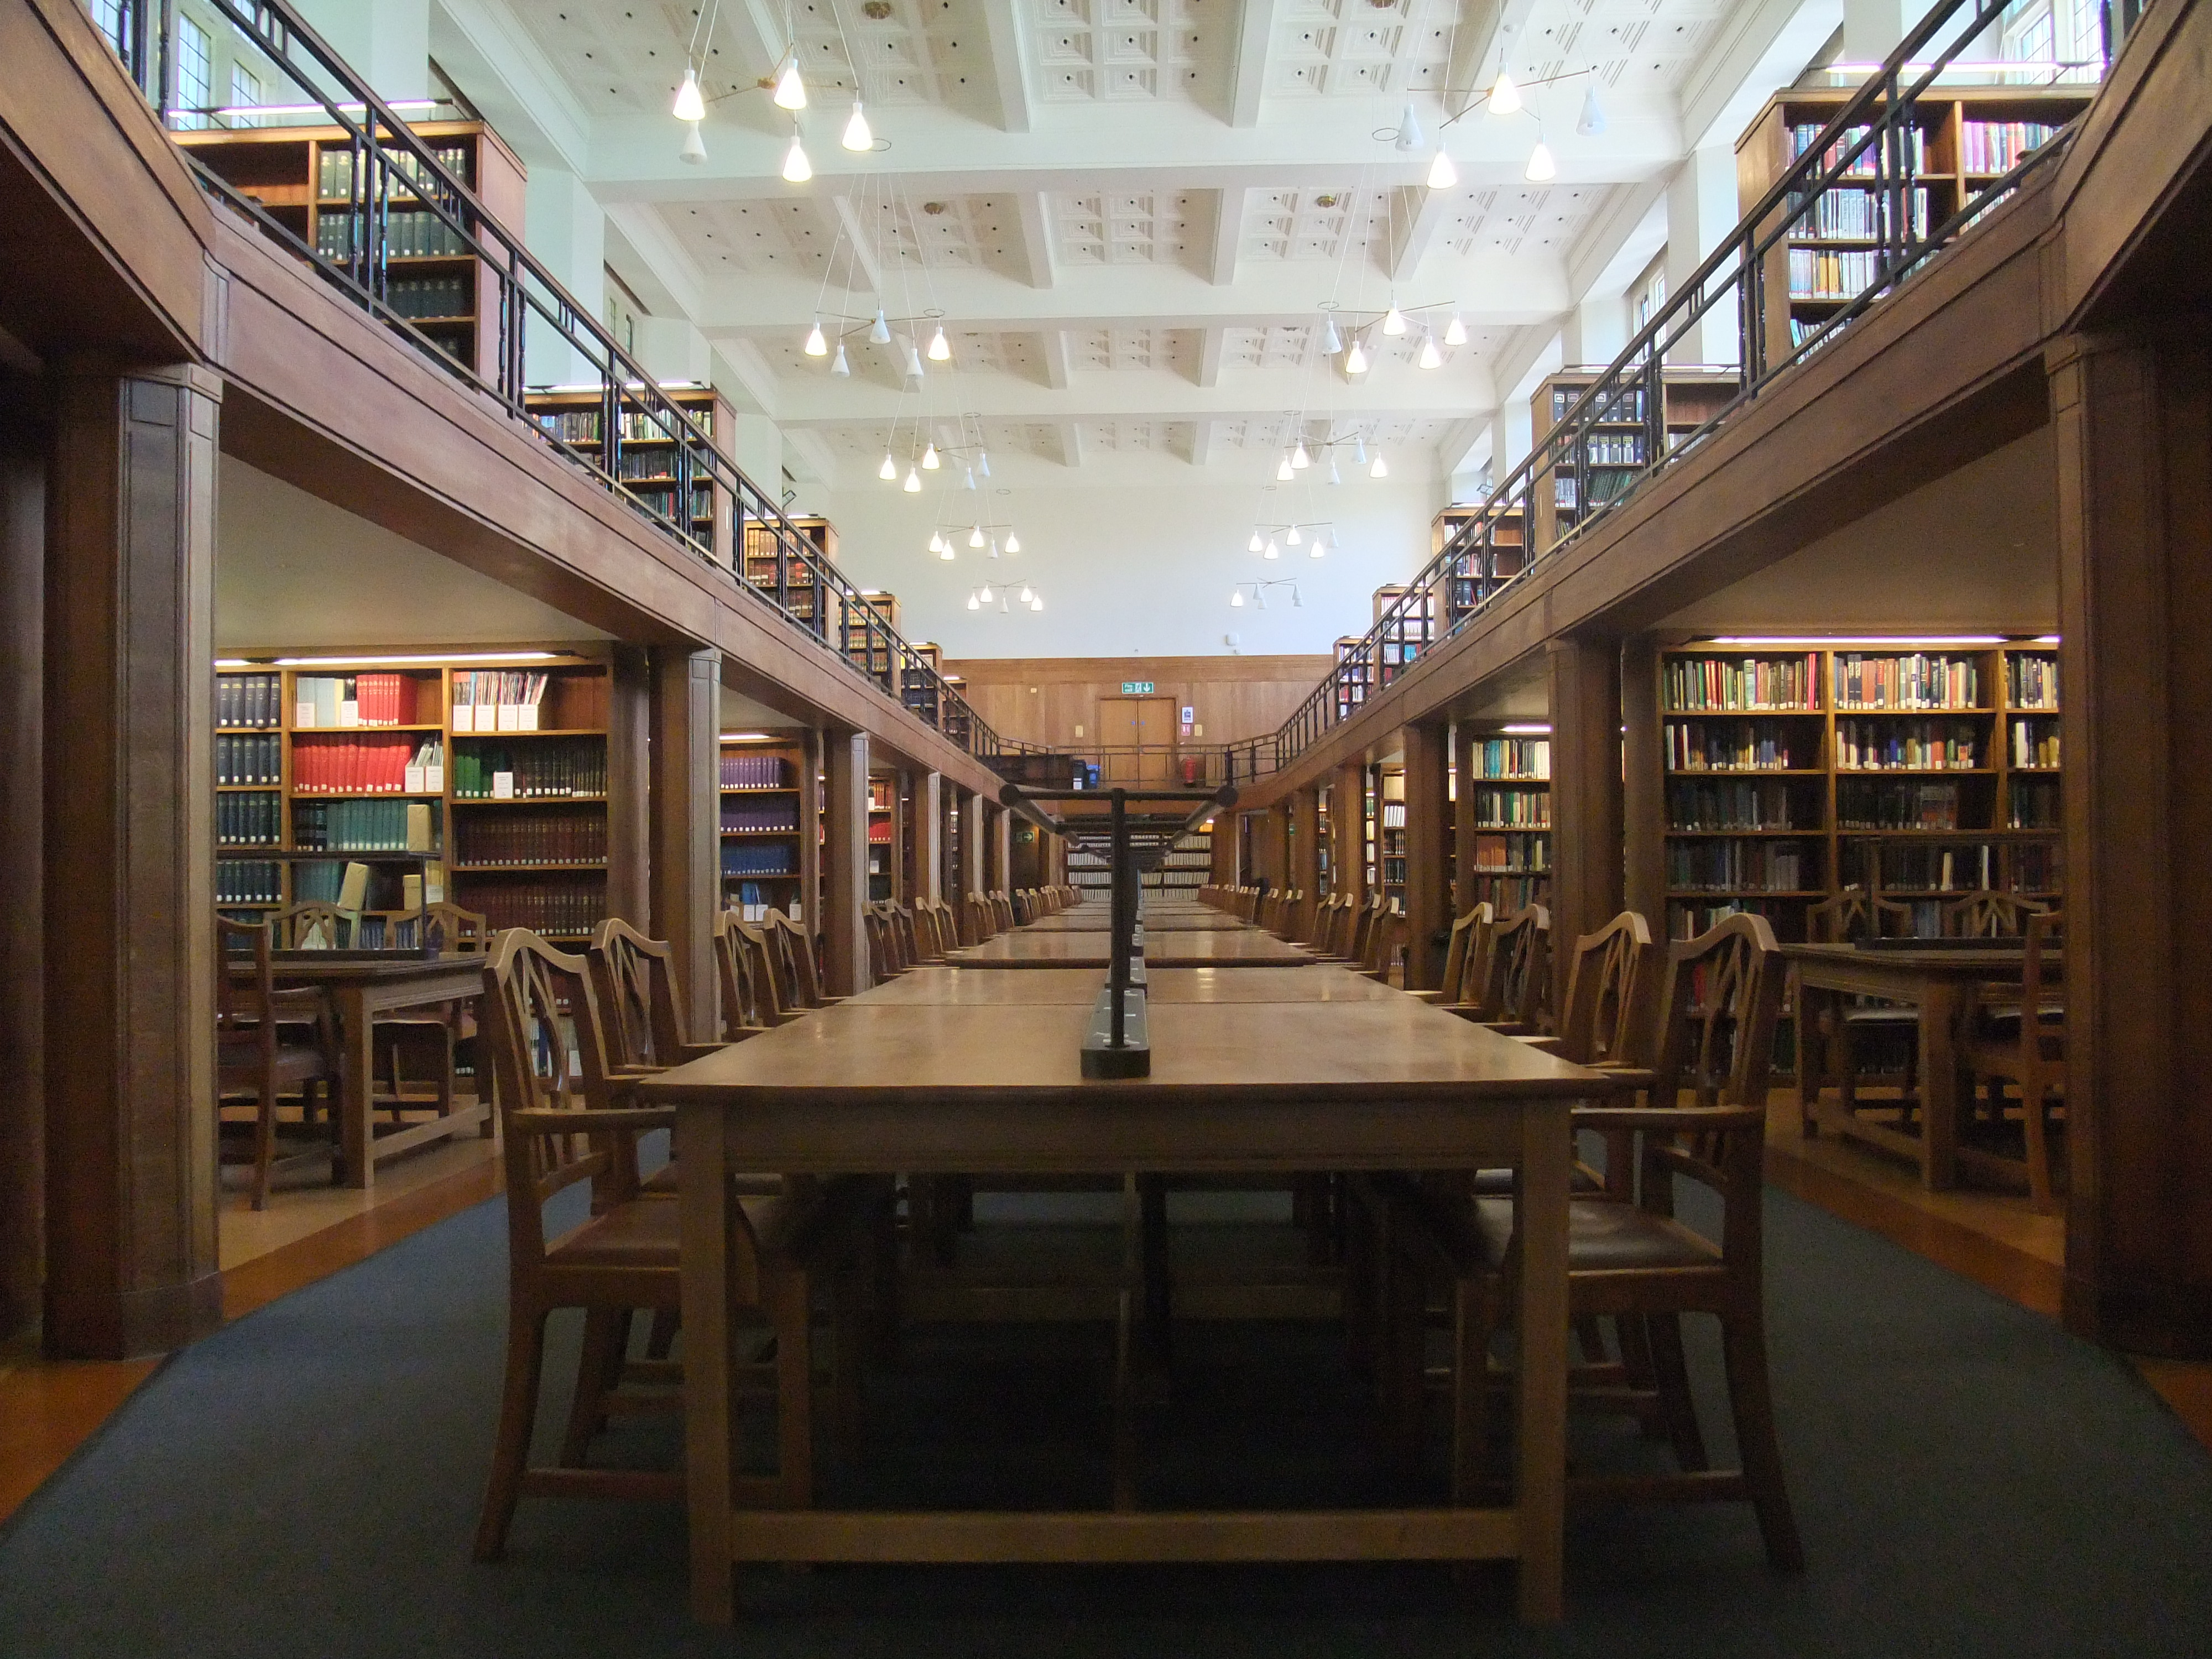 Wills library